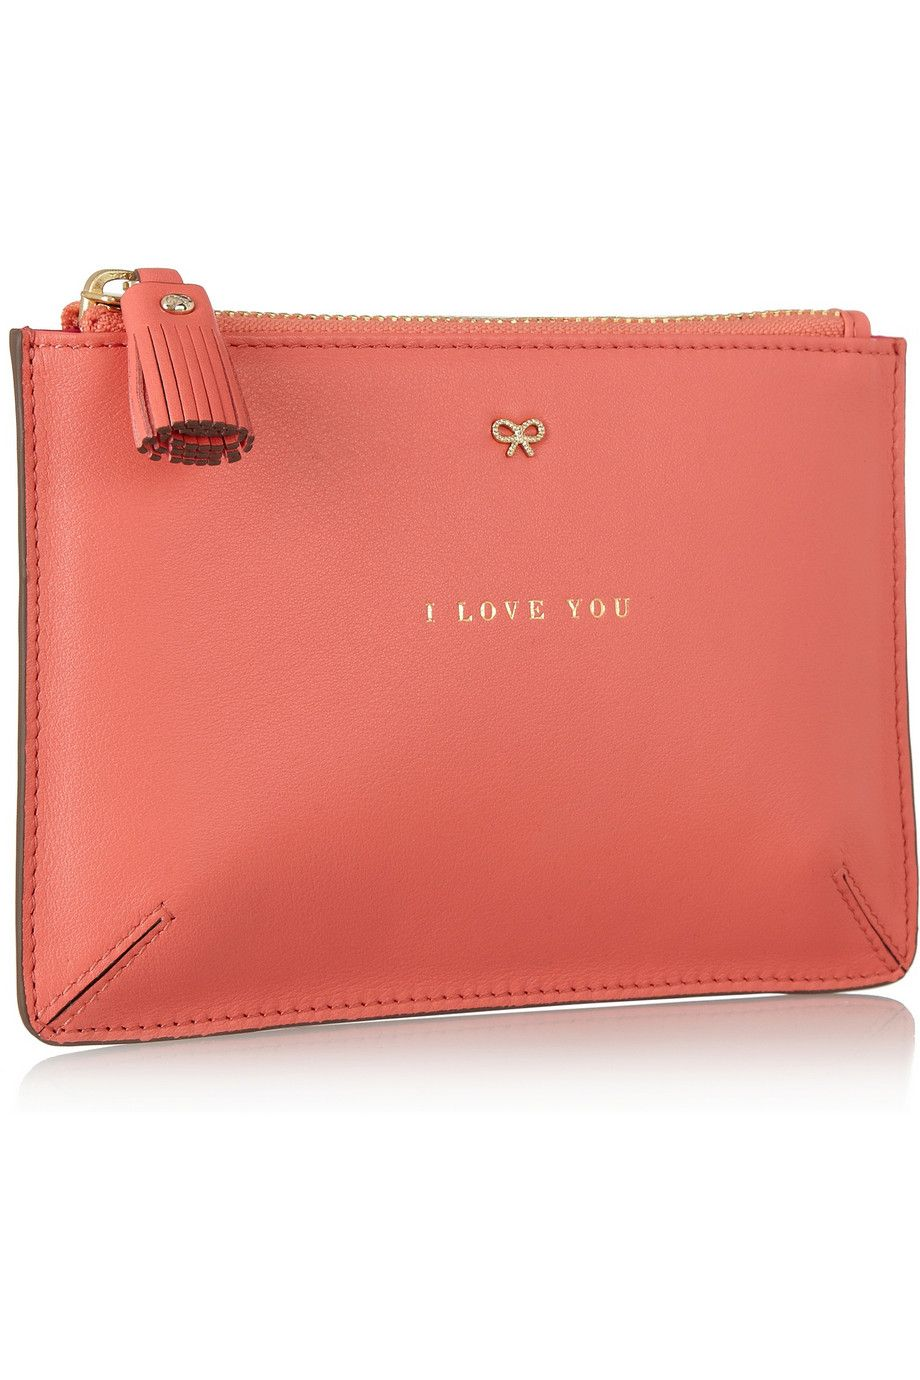 Anya HindmarchI Love You leather pouch